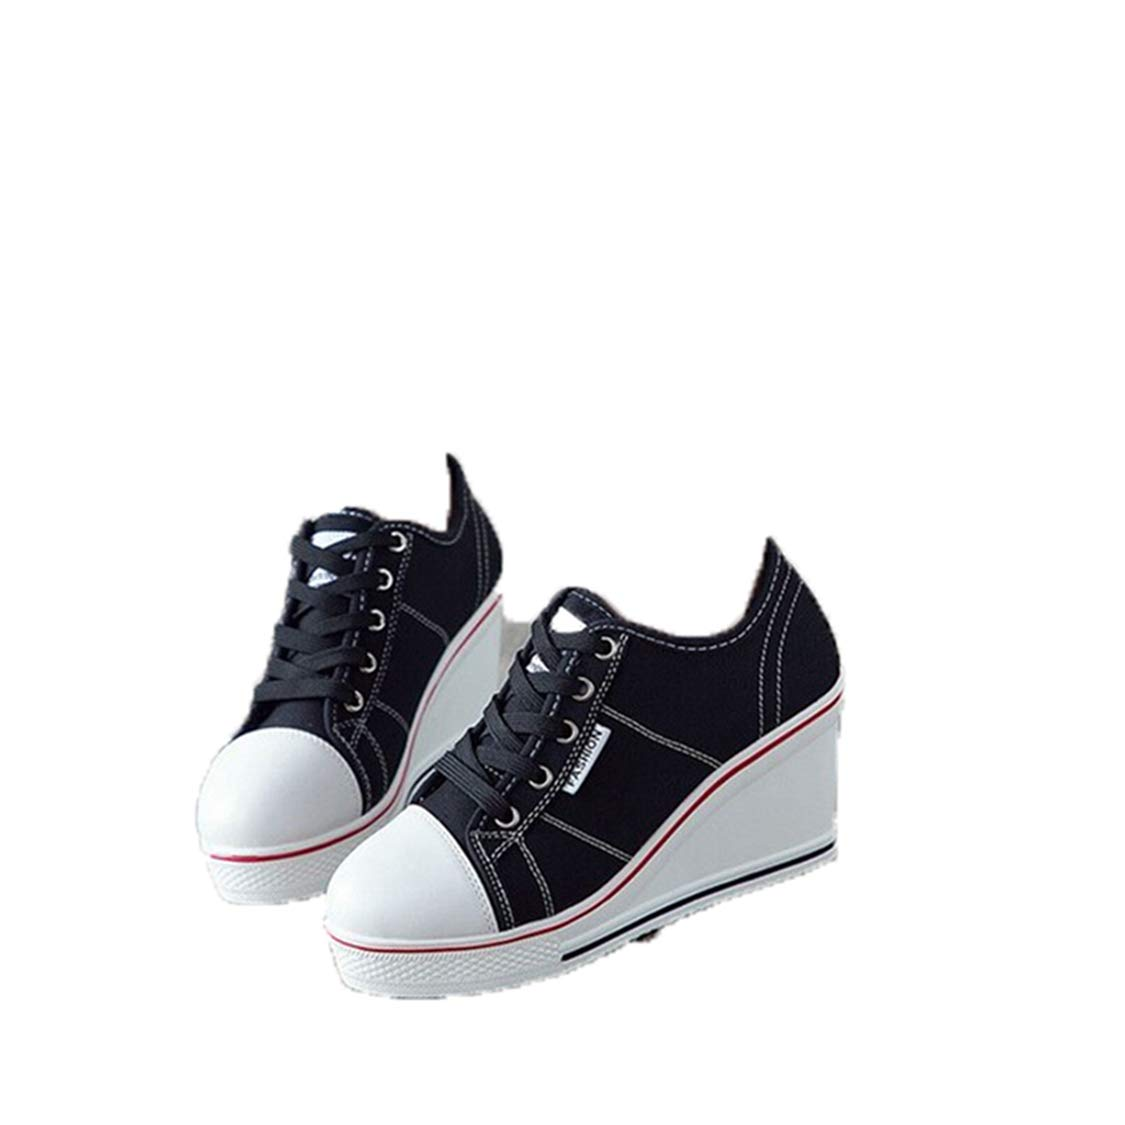 96c437cd40b5d Amazon.com: DOSOMI Womens Students Wedge Sneakers Canvas Vulcanize ...